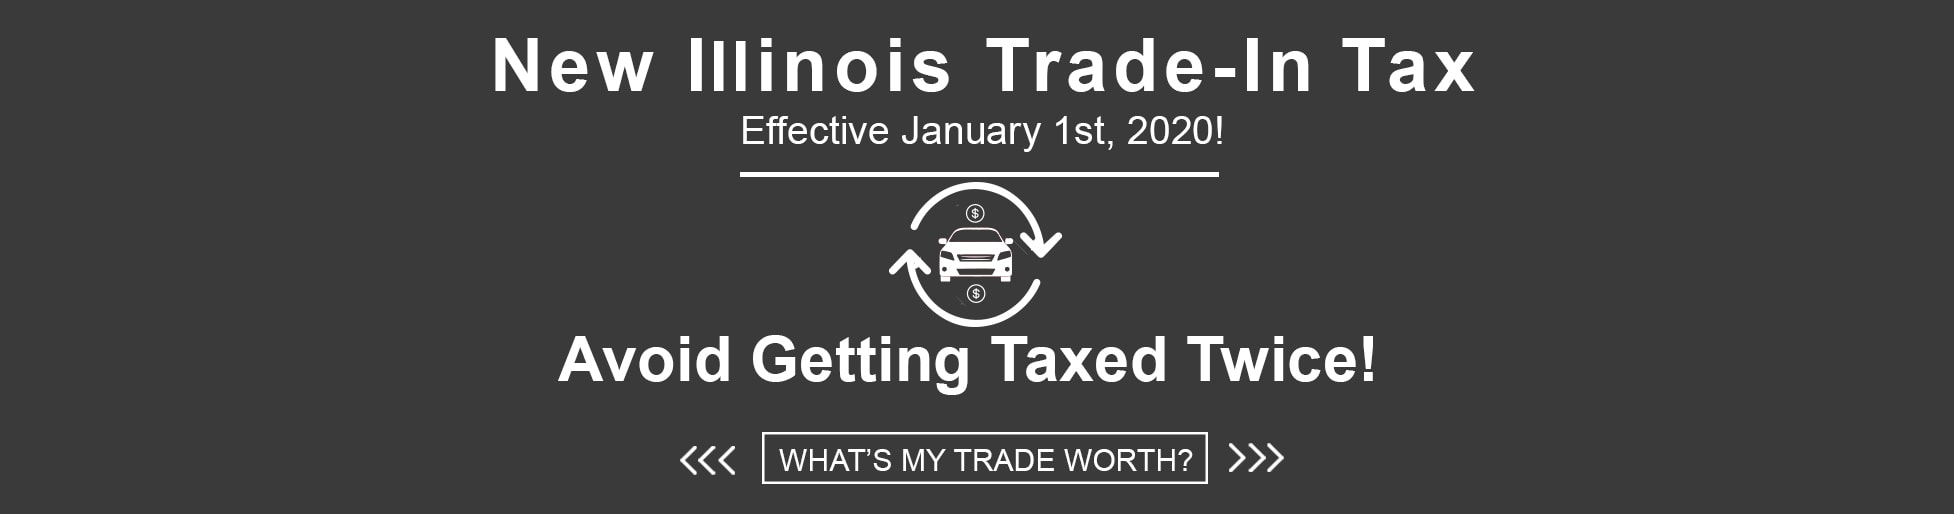 Avoid Getting Taxed Twice from New Illinois Trade-In Tax